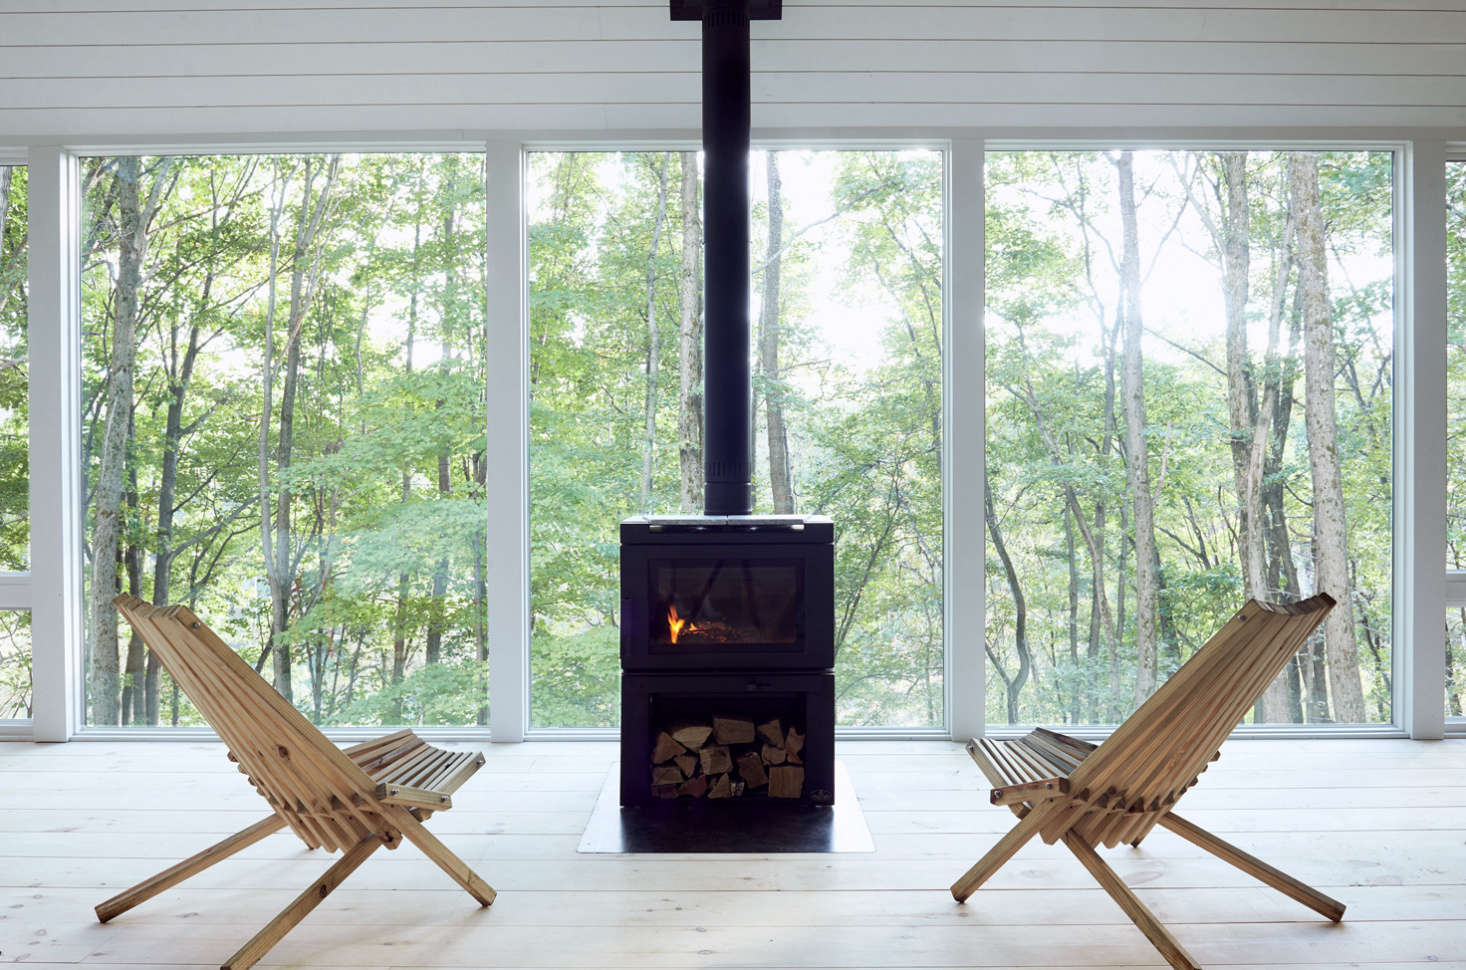 Two vintage Kentucky stick chairs (sourced on Etsy) are situated for optimal forest bathing: in front of floor-to-ceiling Andersen windows and an Osburn Matrix wood stove.